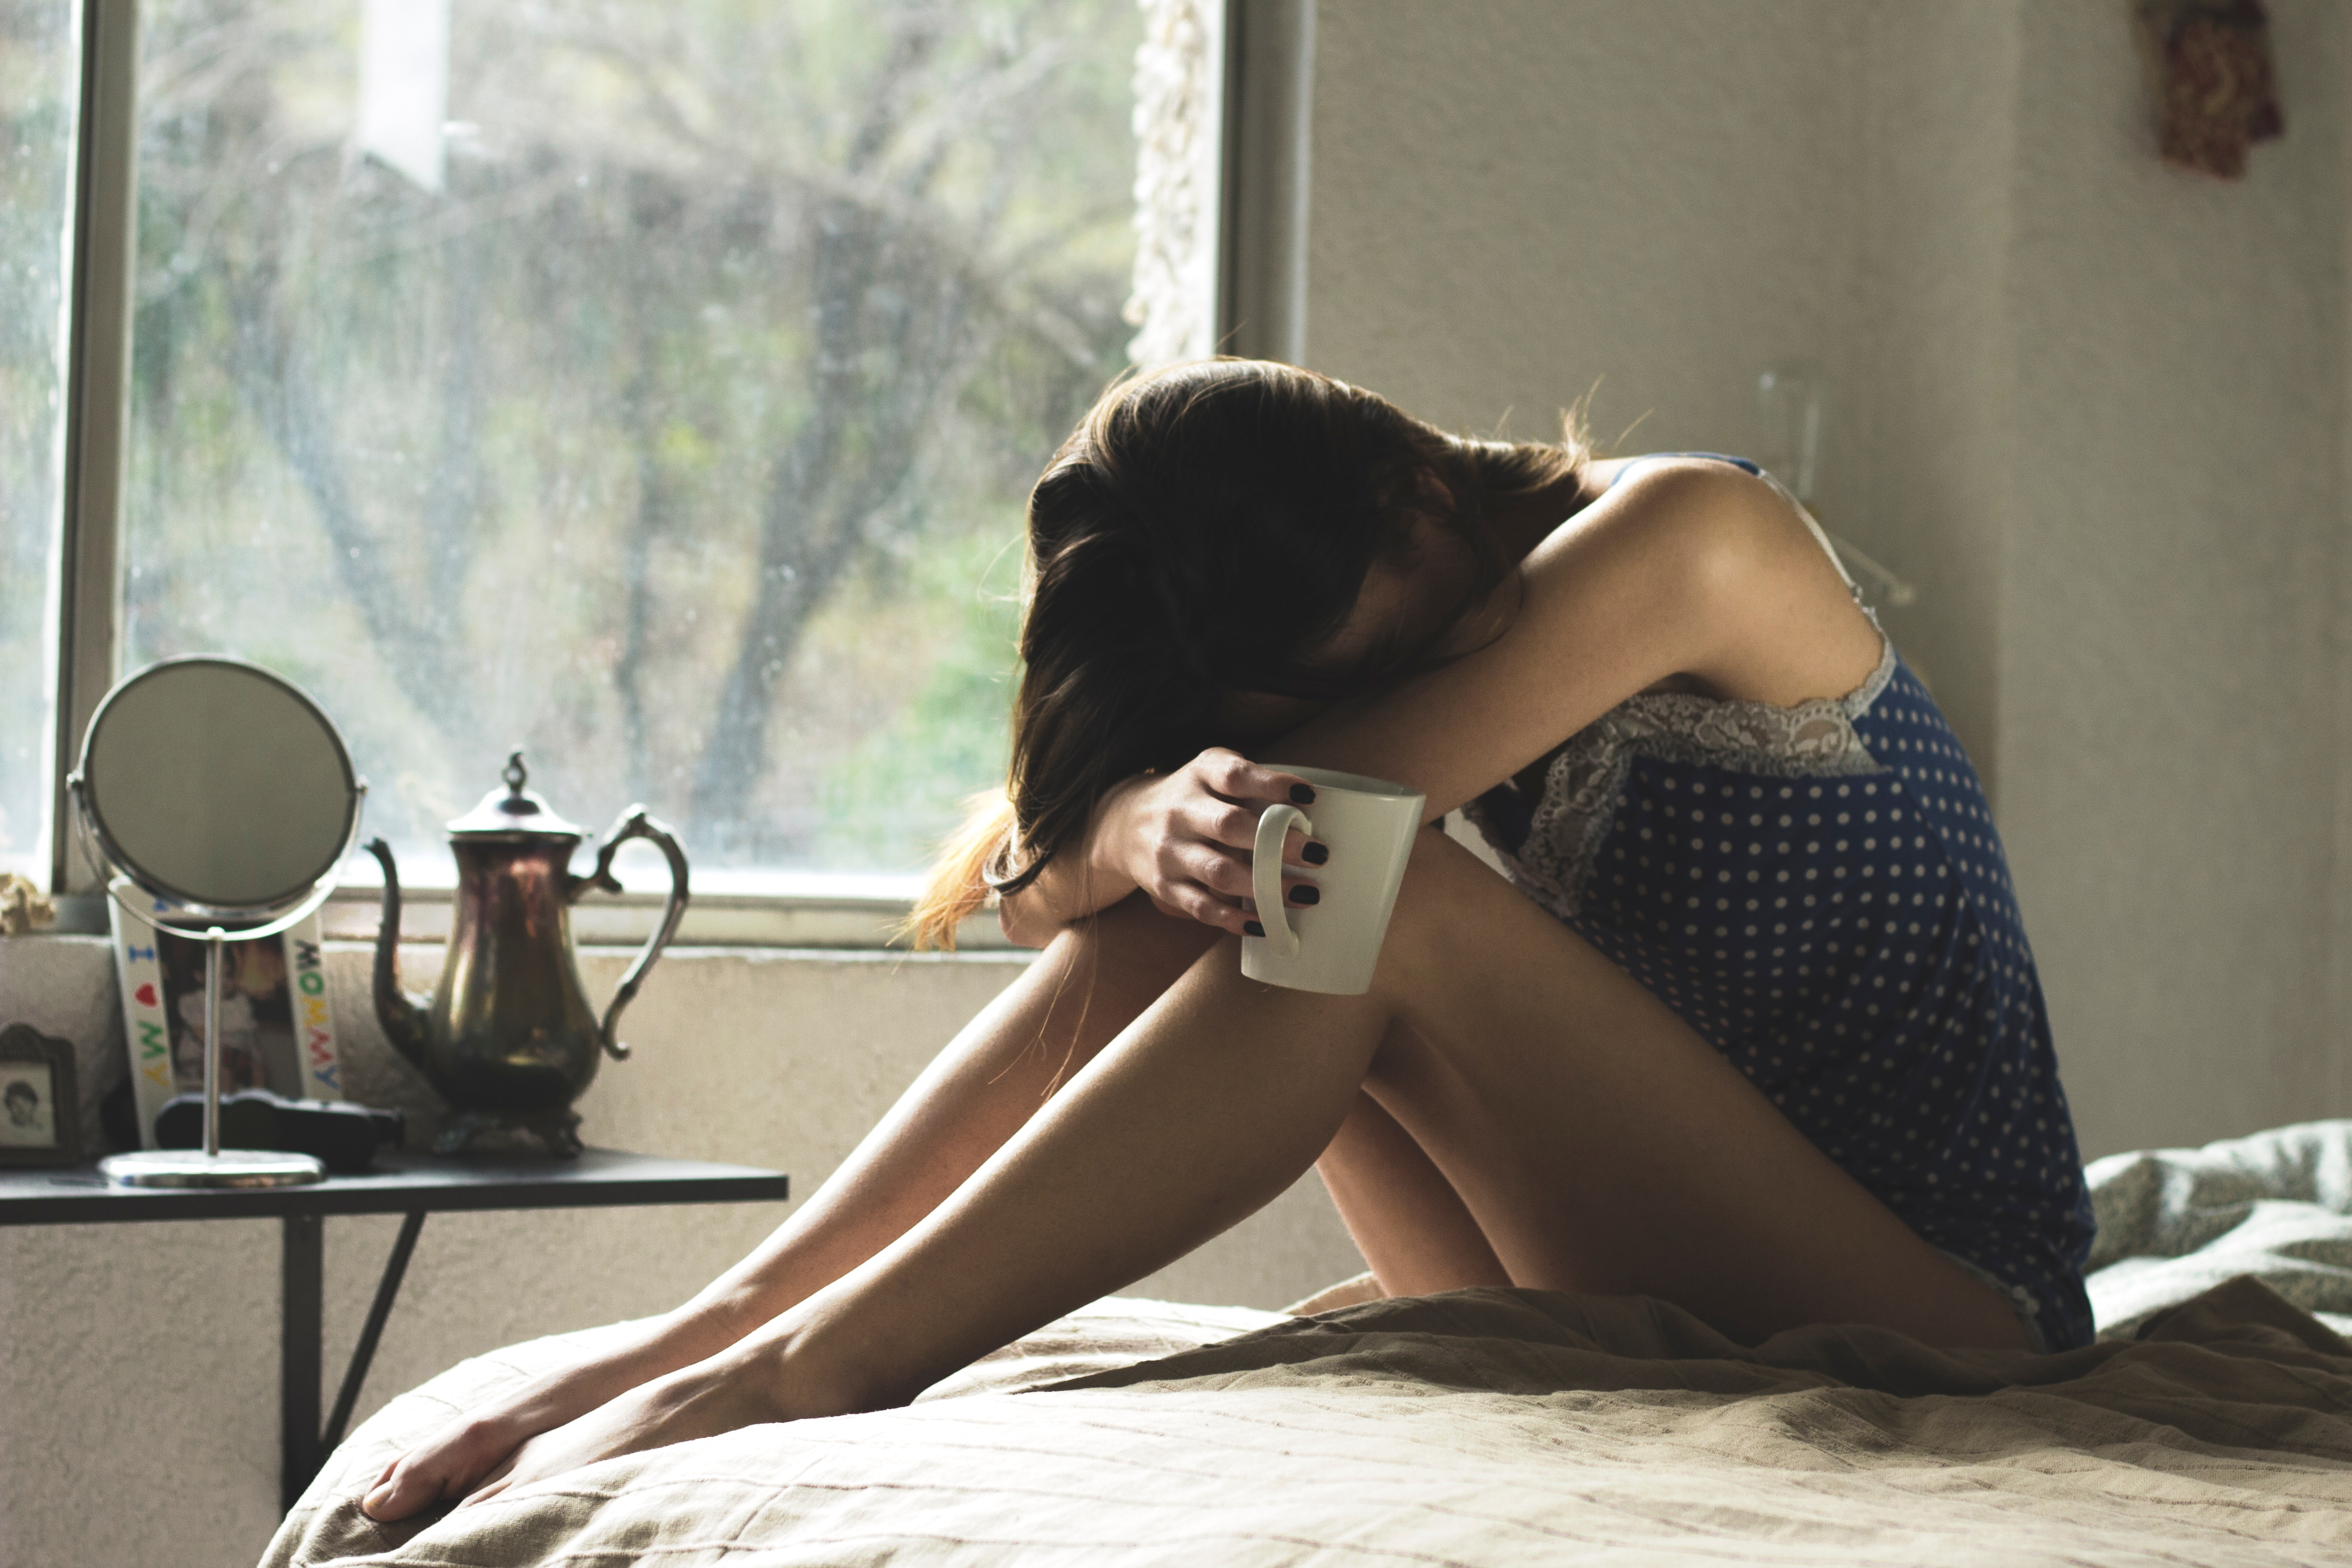 woman with migraine hunches over on bed, holds coffee cup